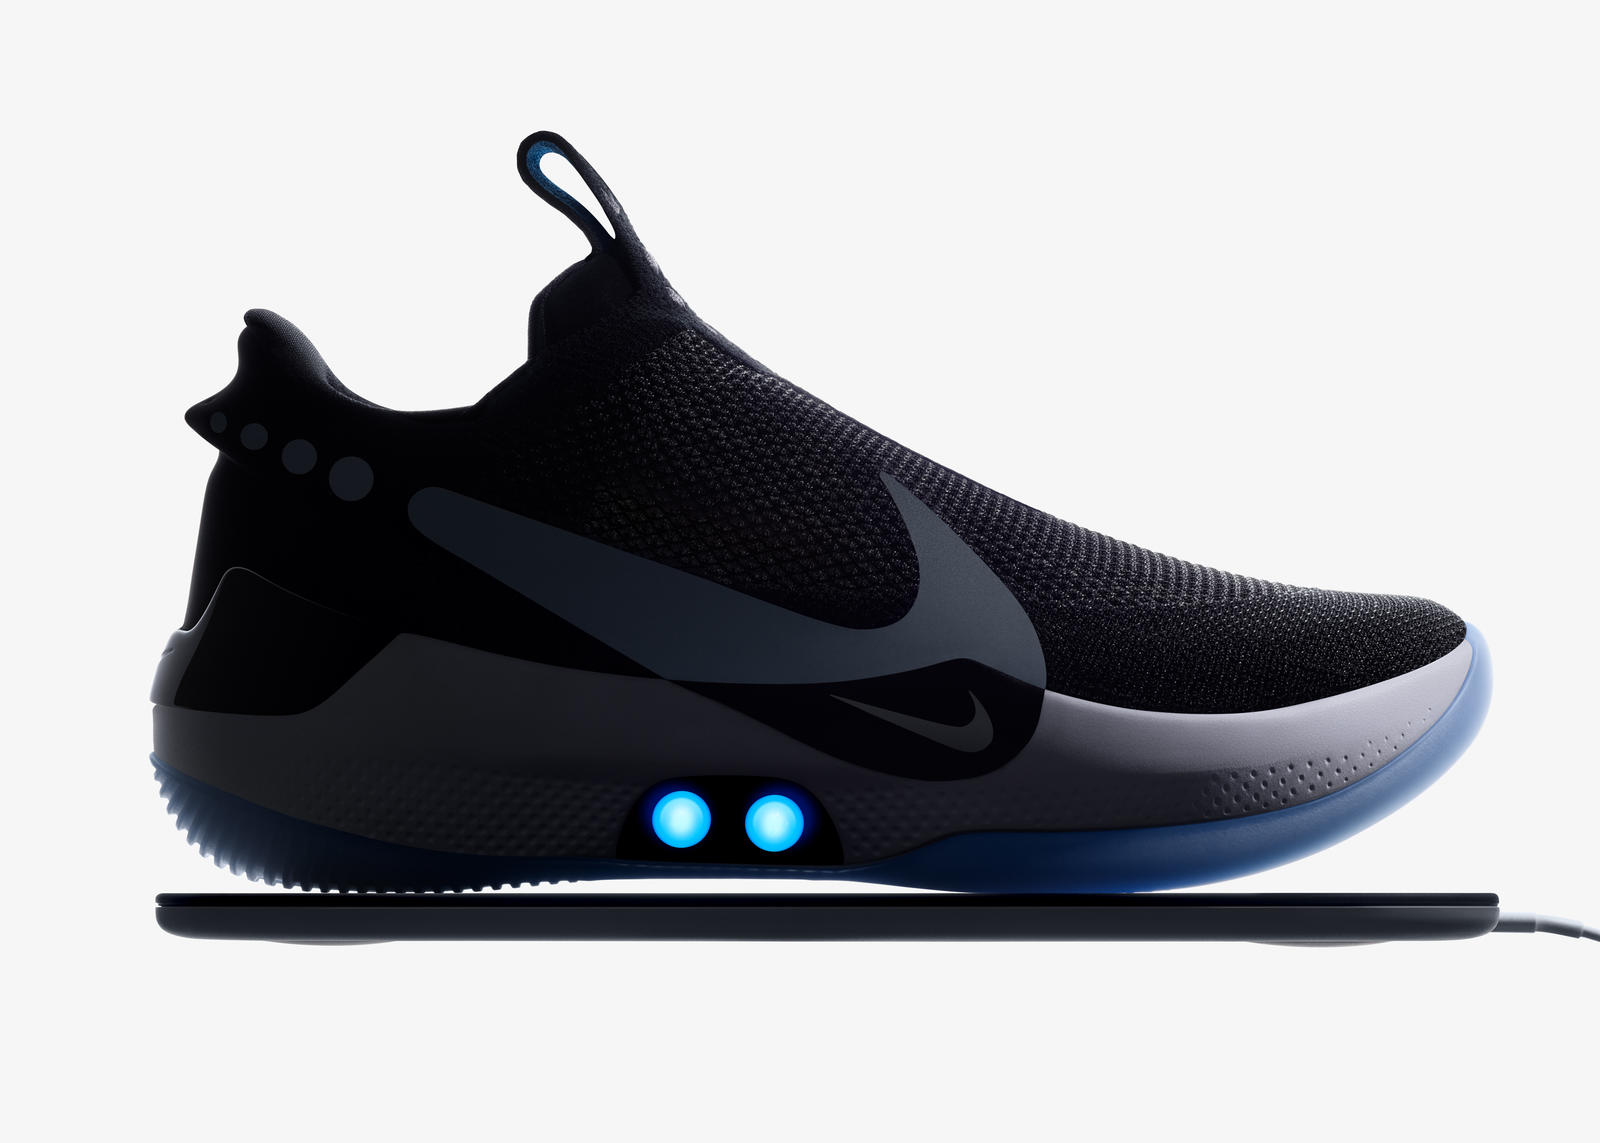 1646b915d45 Introducing the Nike Adapt BB - Nike News